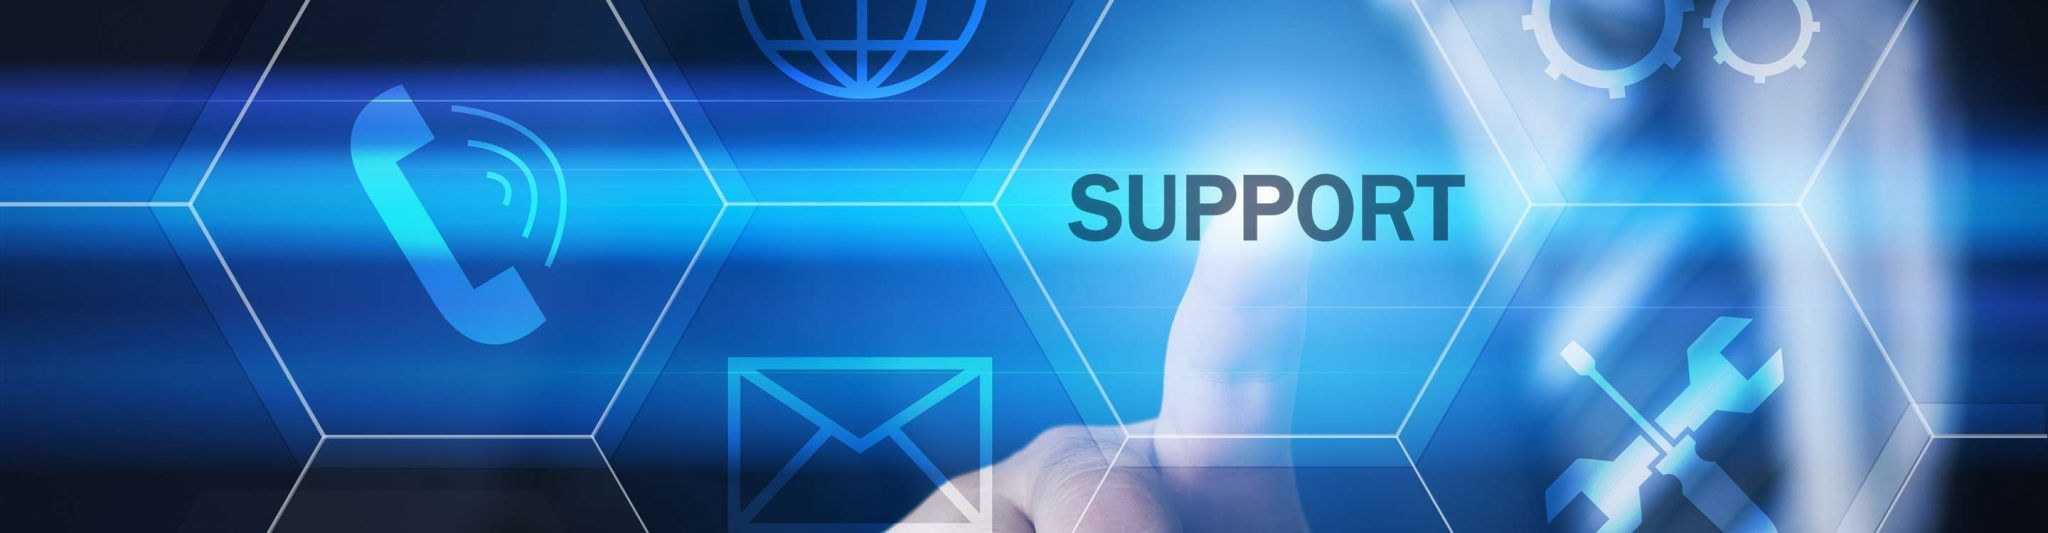 support g - Support